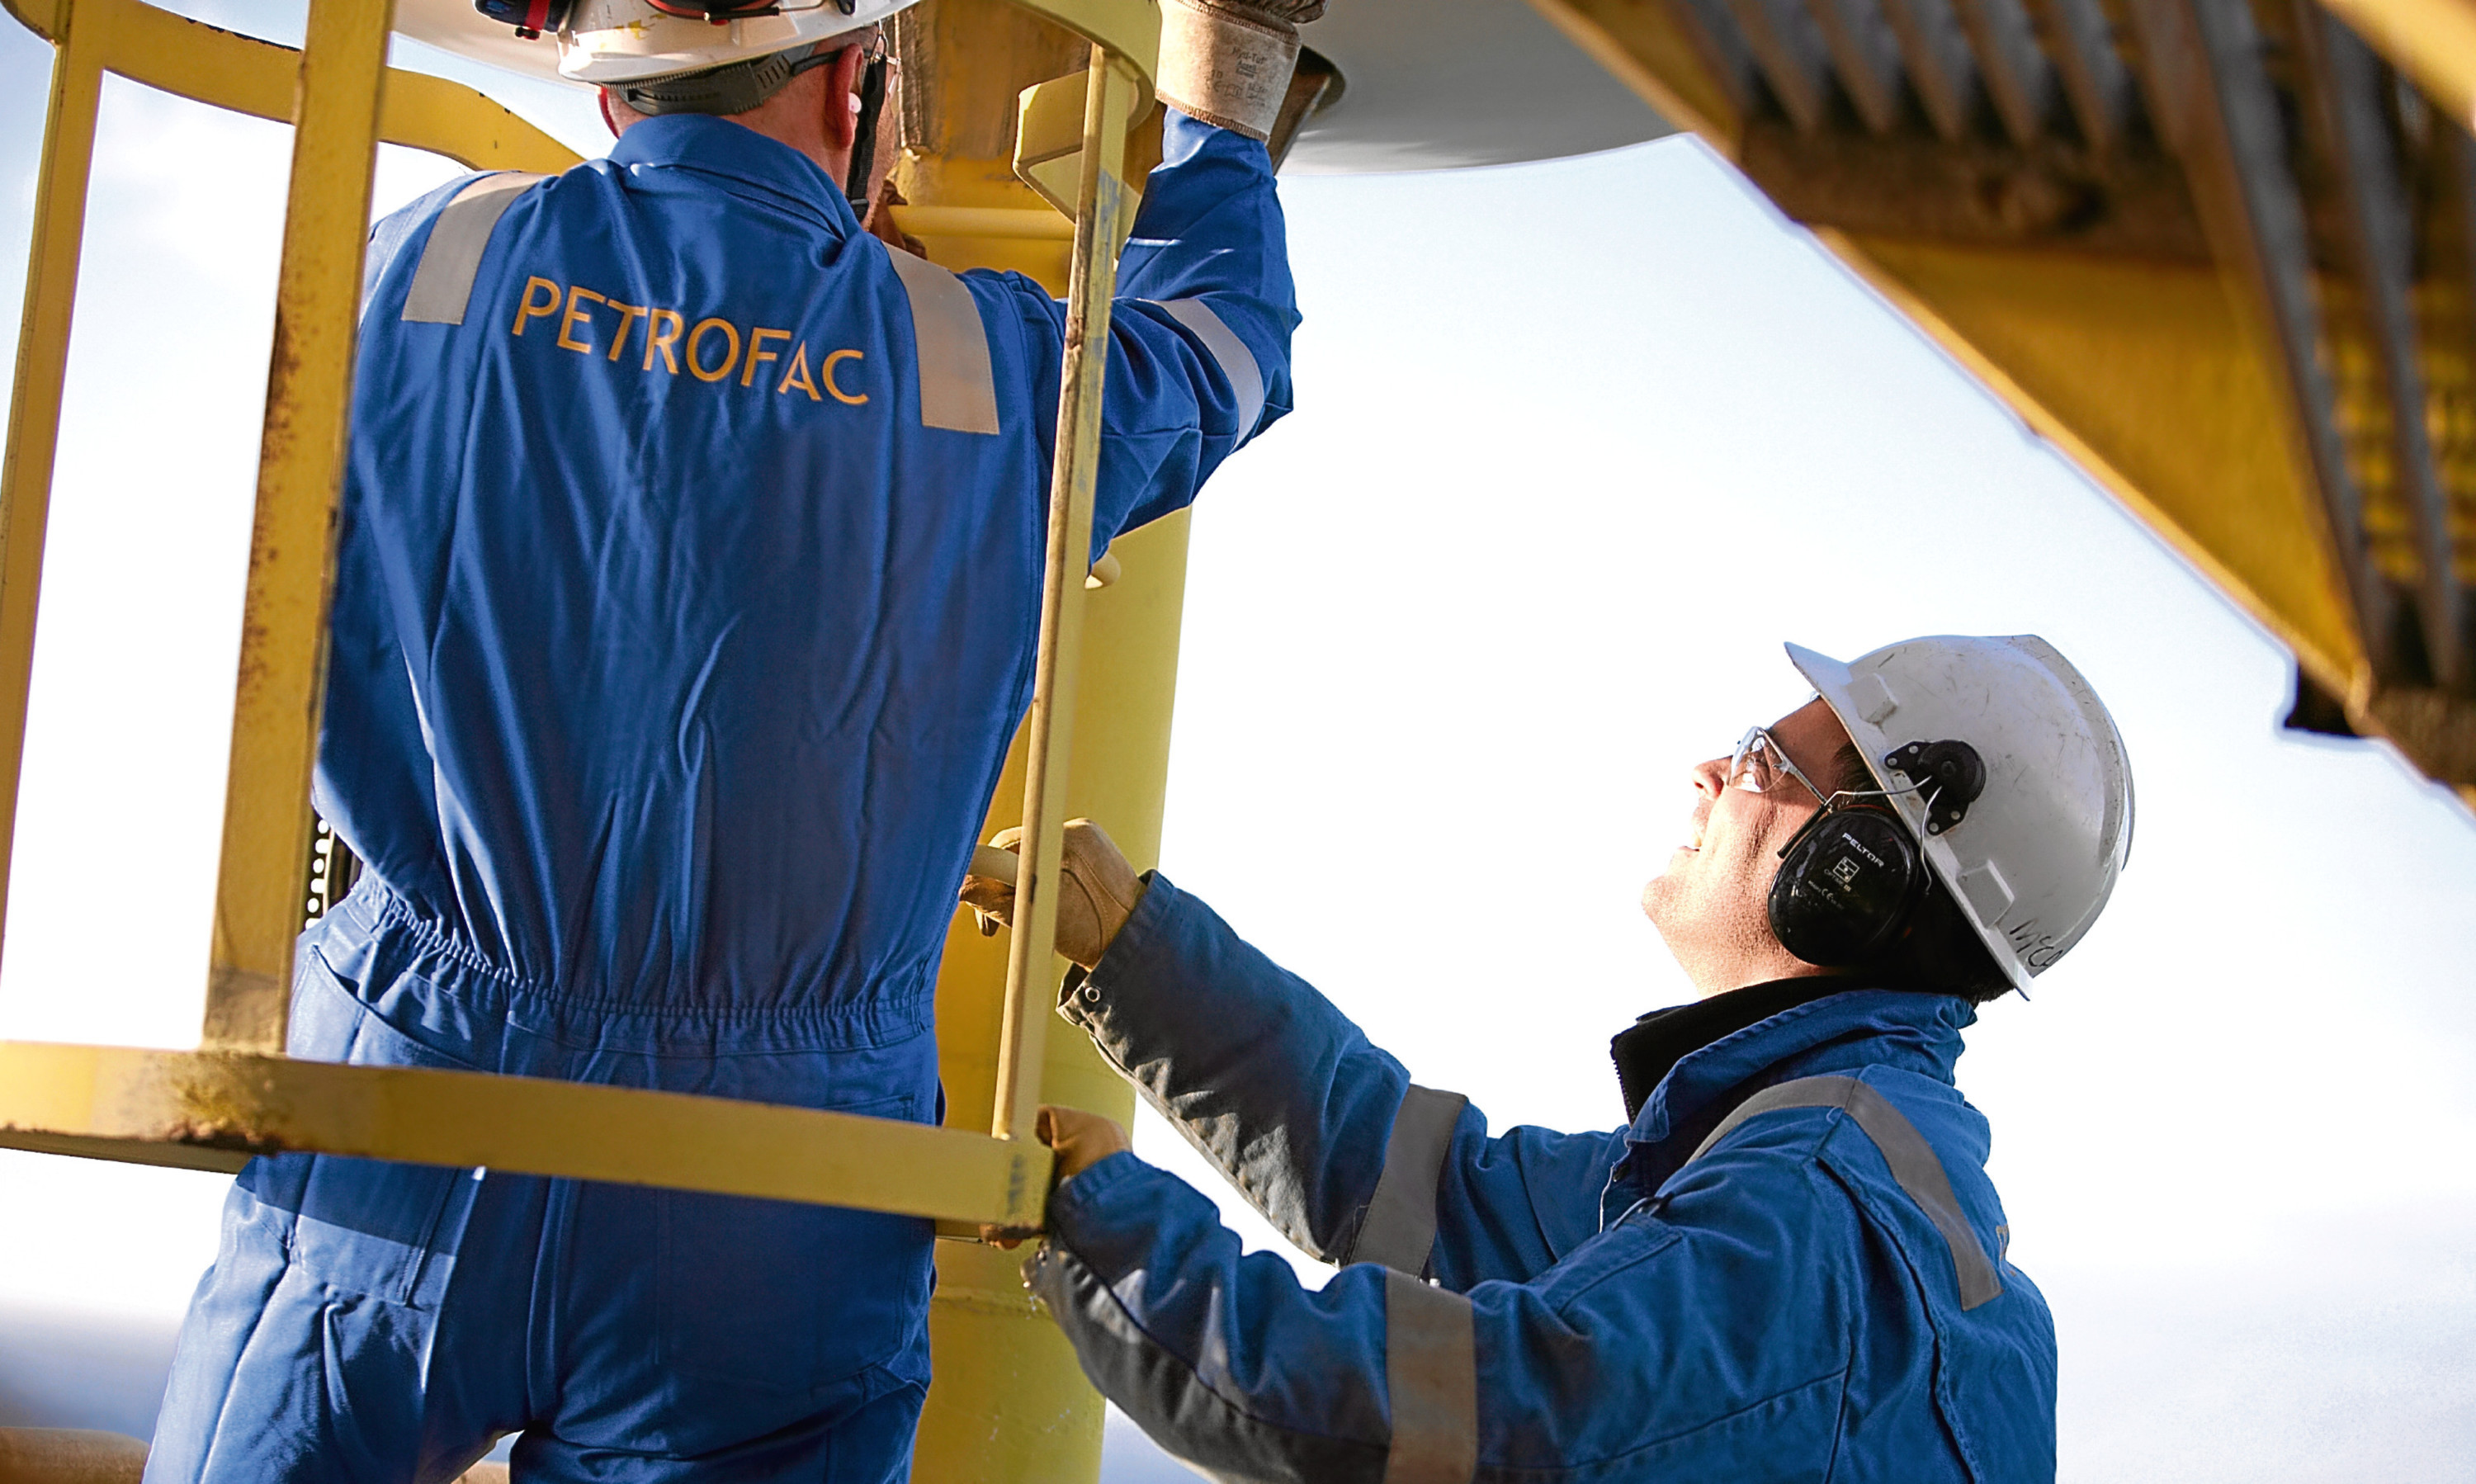 Petrofac engineers perform offshore operations